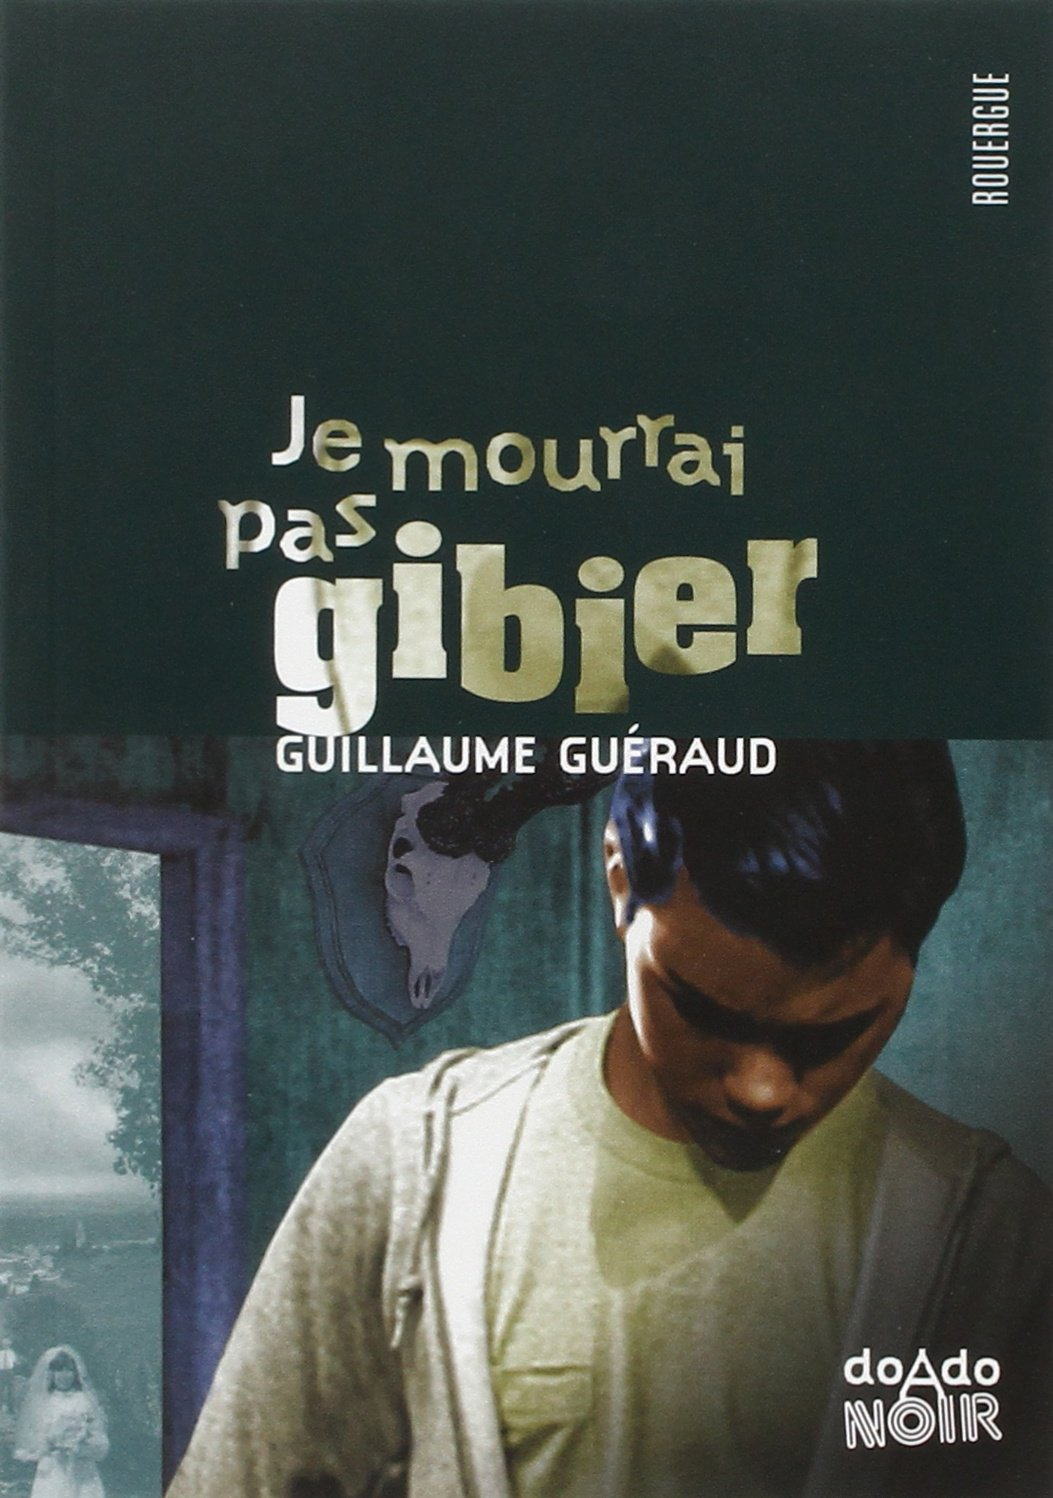 Je mourrai pas gibier (French Edition) ebook